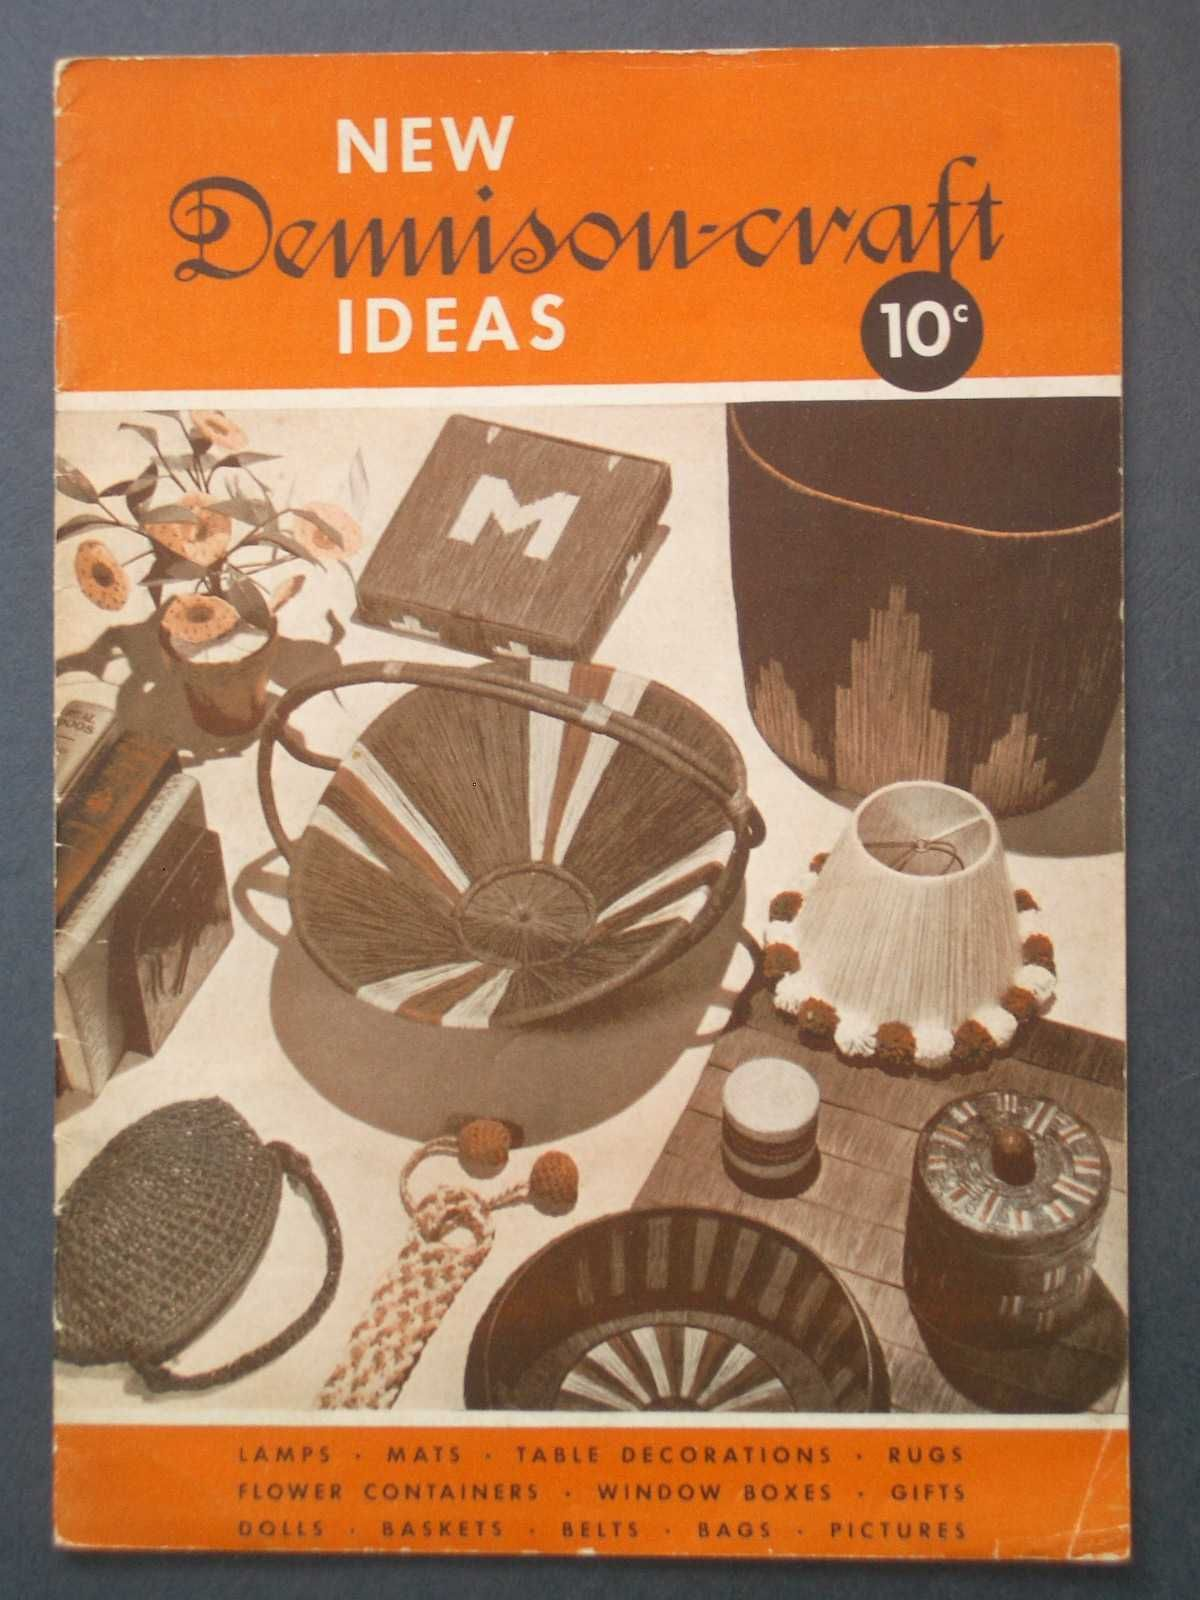 New Dennison Craft Ideas By Anonymous Paperback First Edition